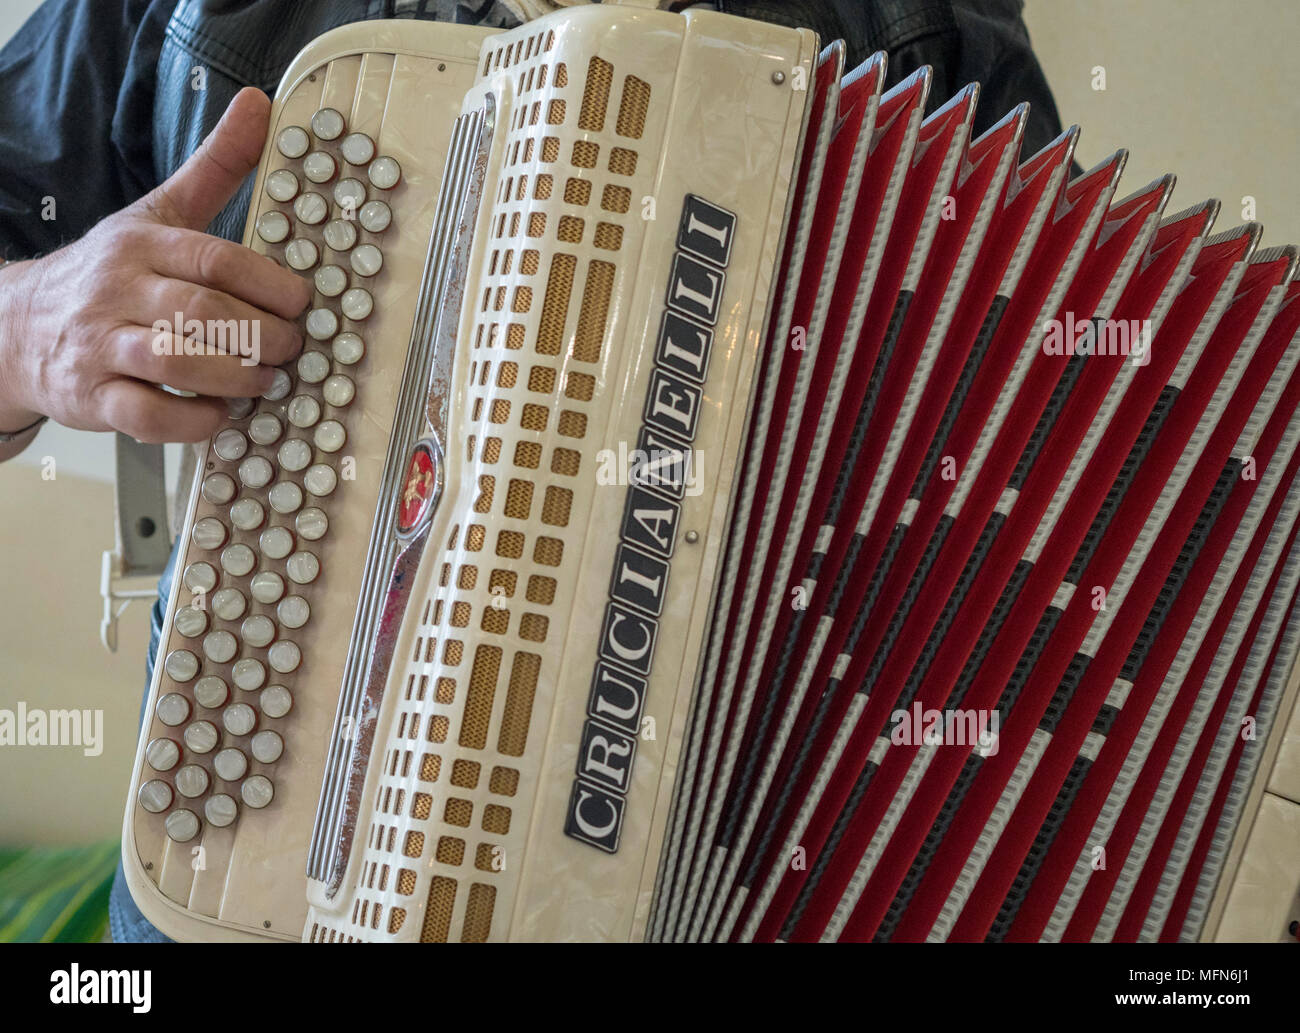 Accordion Players Stock Photos & Accordion Players Stock